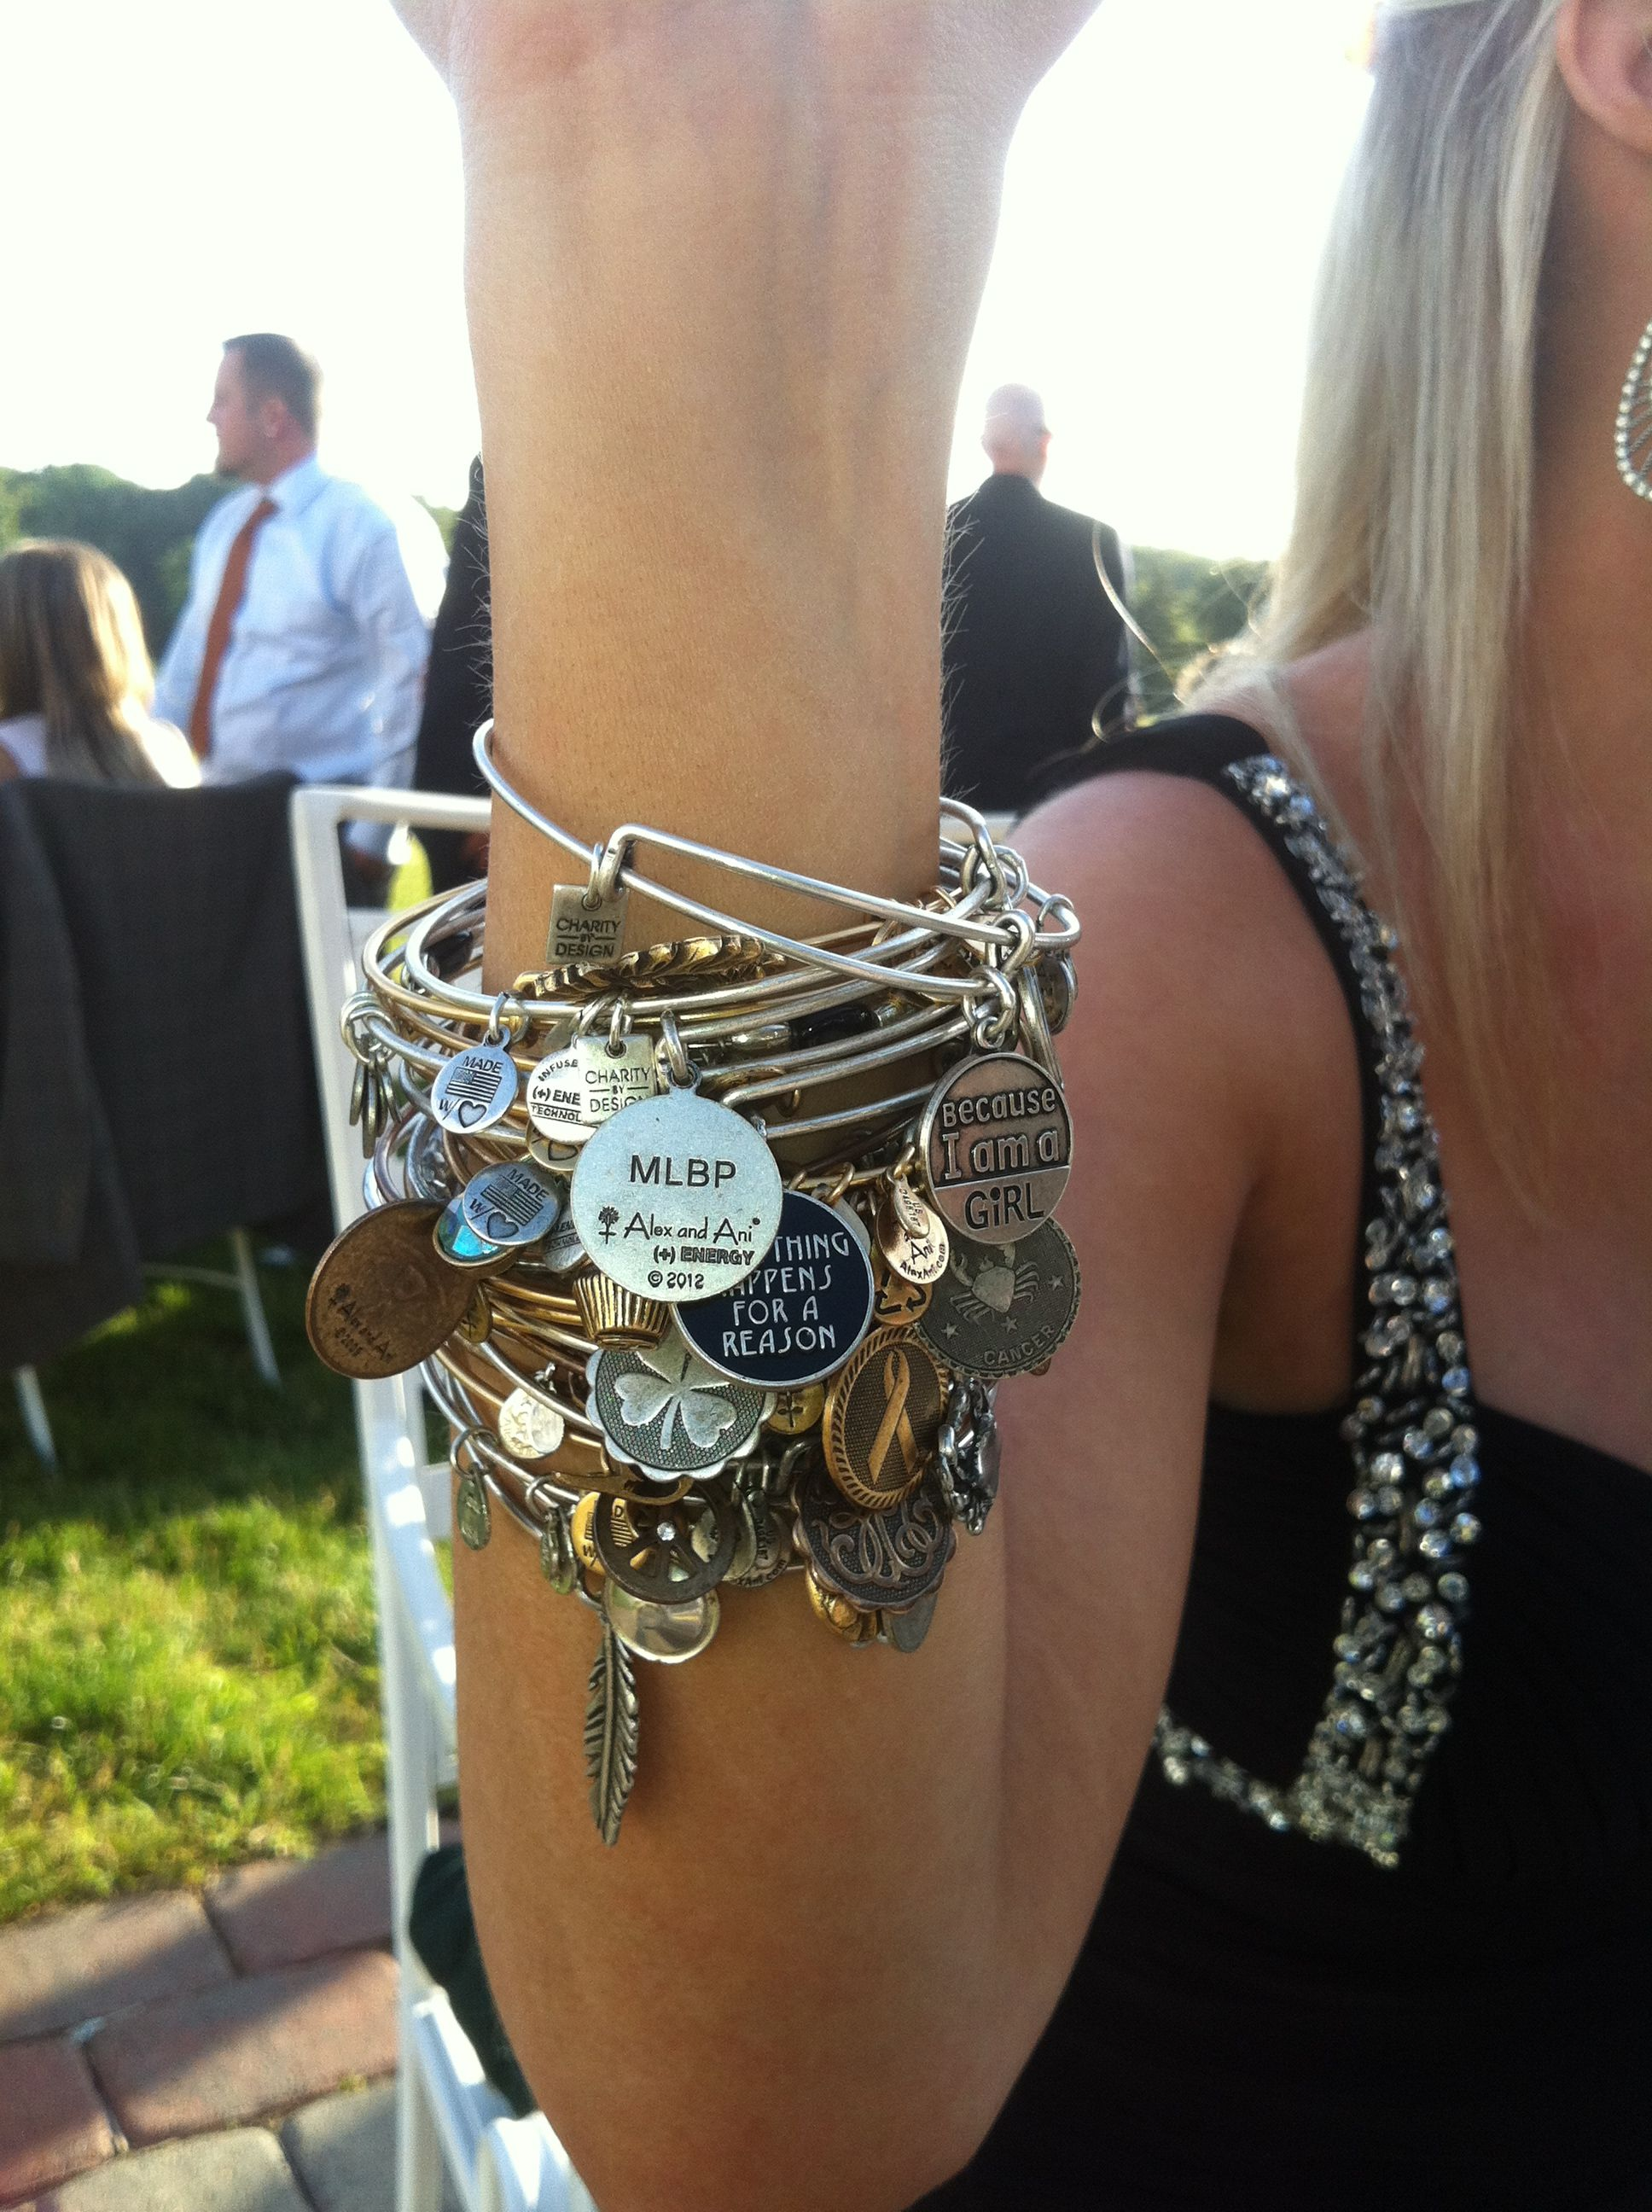 Love Alex and Ani bangles